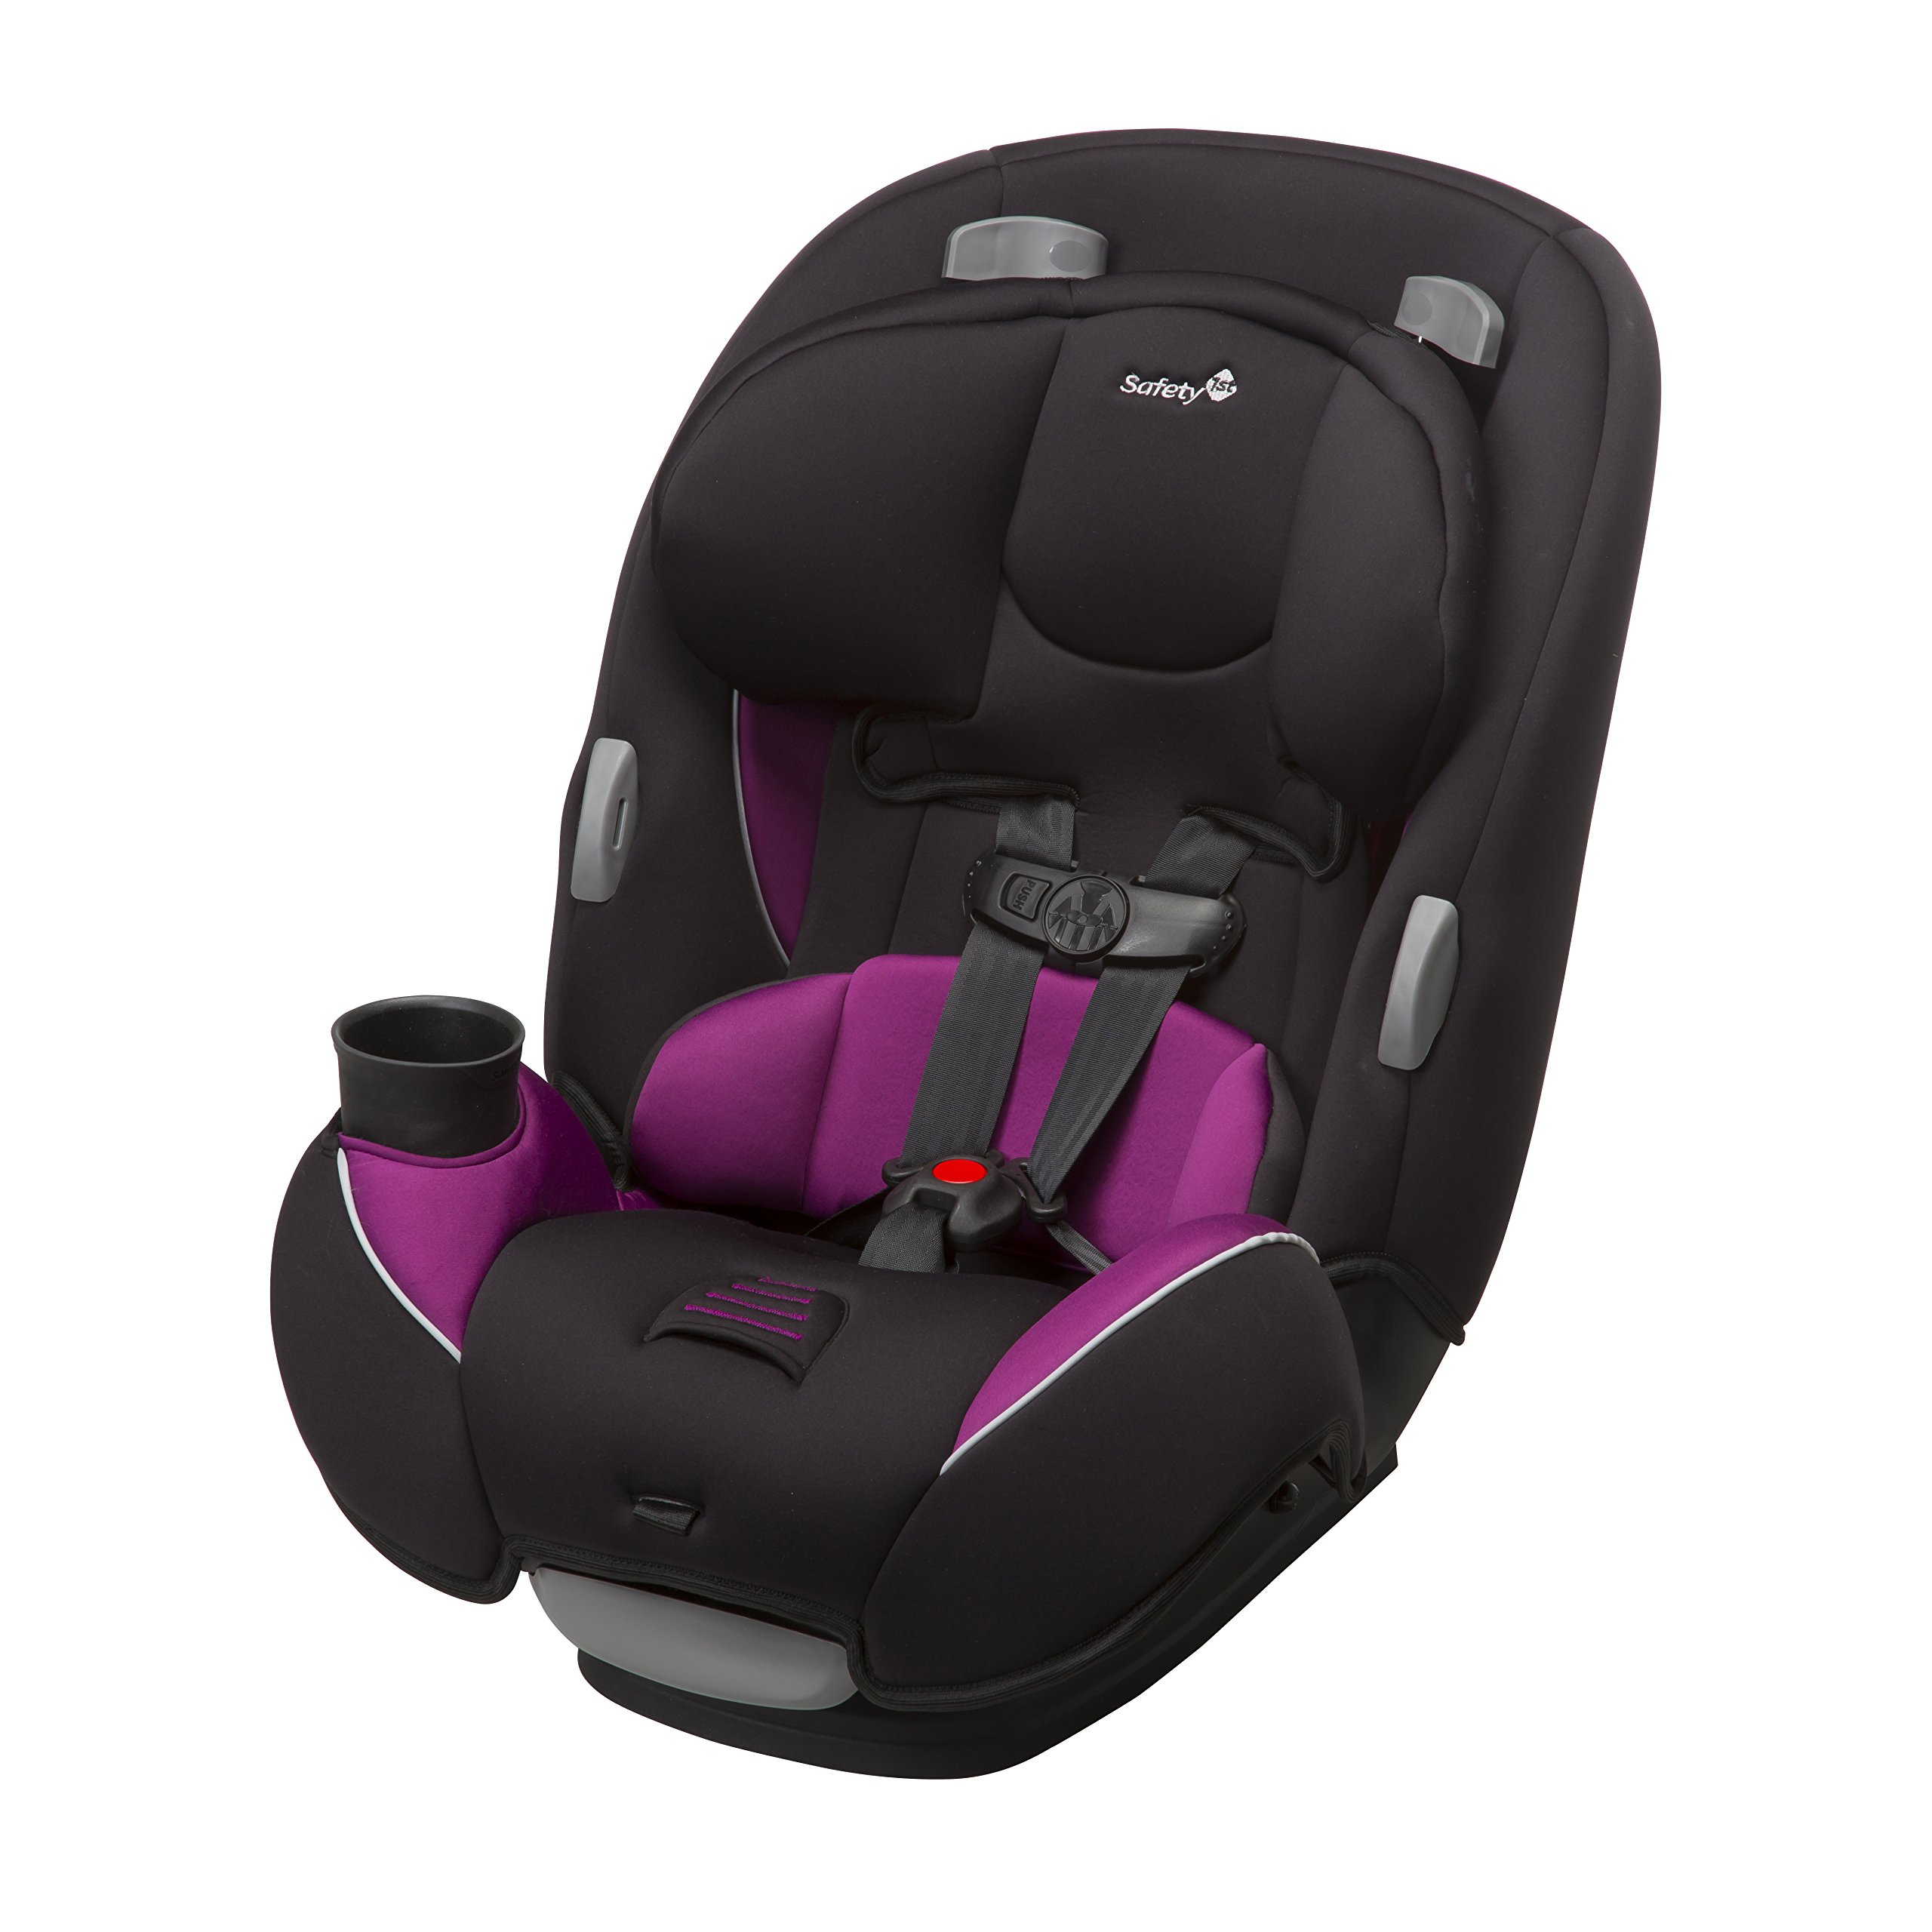 Safety 1st Continuum 3 In 1 Car Seat, Hollyhock